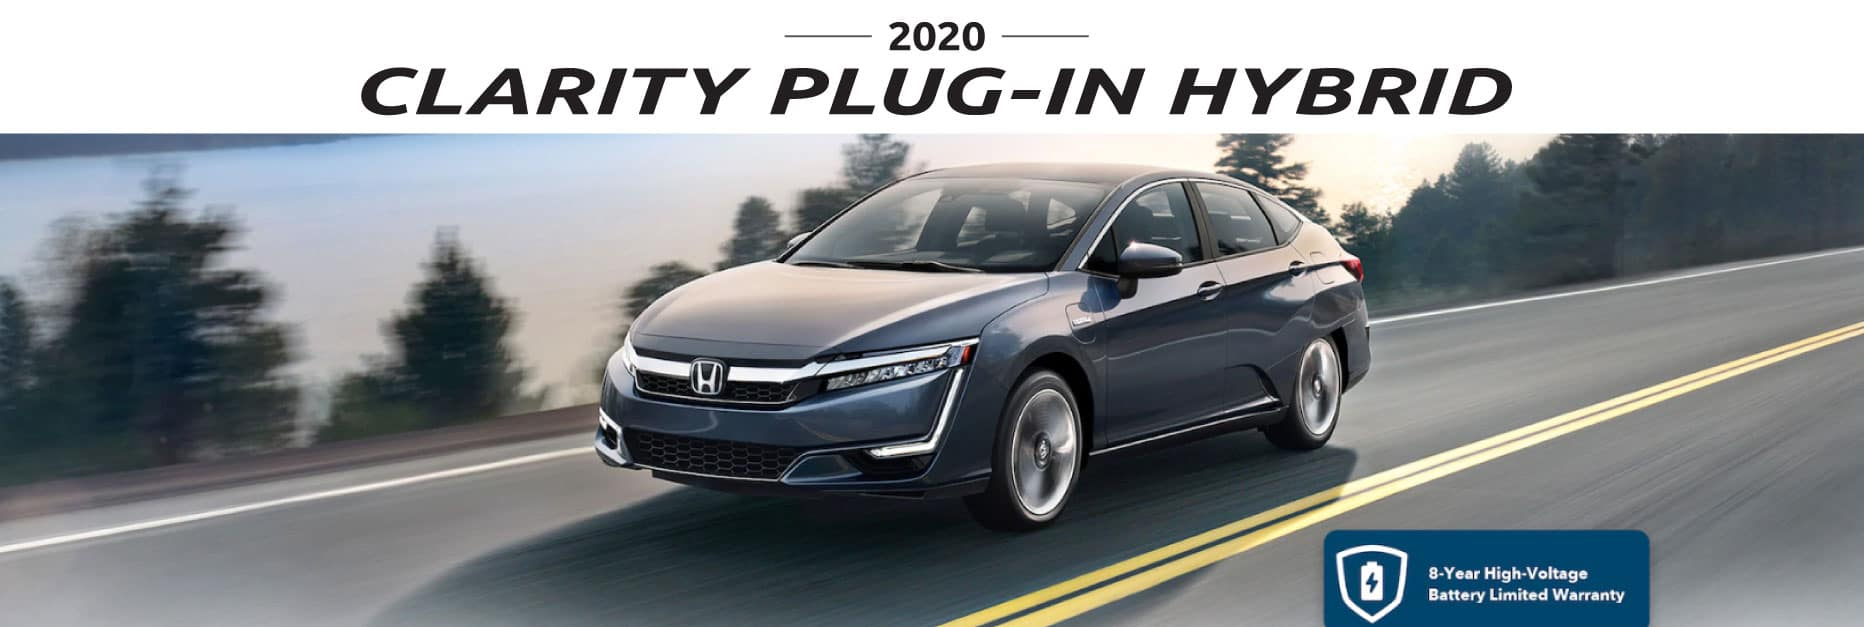 Header Photo of the 2020 Honda Clarity Plug-In Hybrid